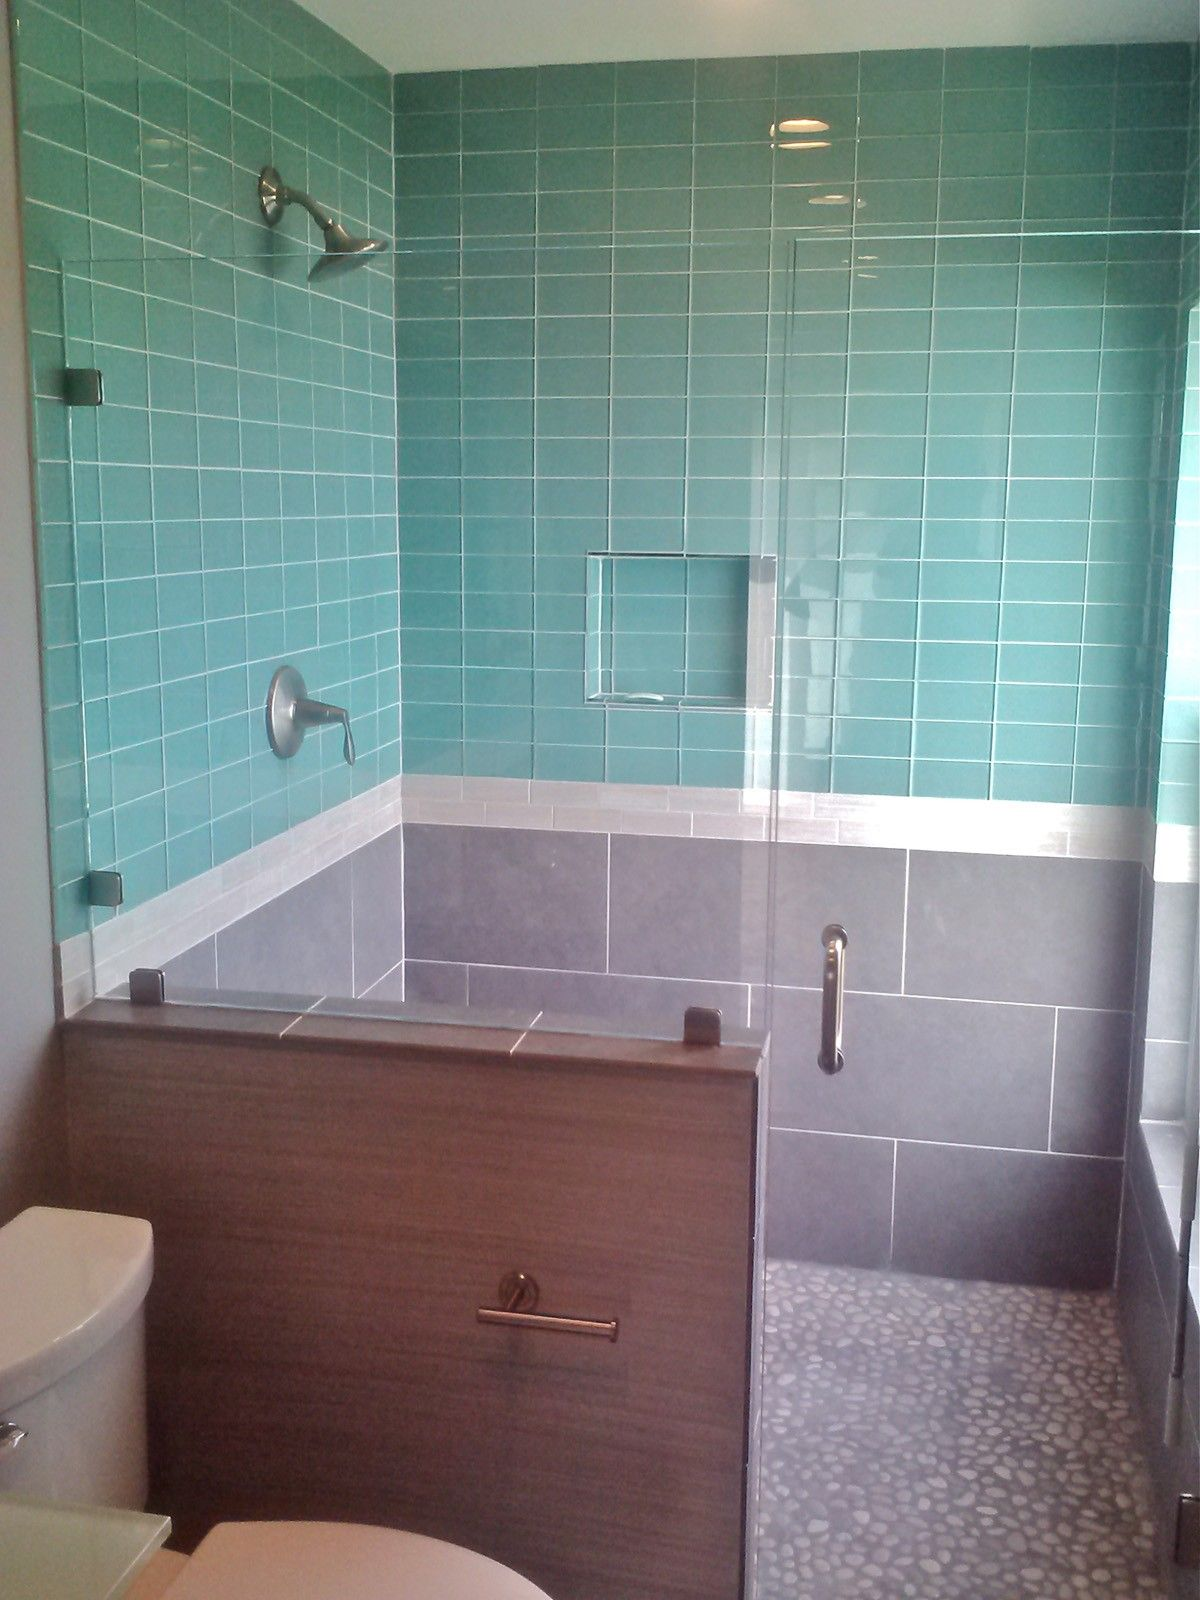 Lush Pool 3x6 Aqua Blue Glass Subway Tile Shower Wall Installation ...